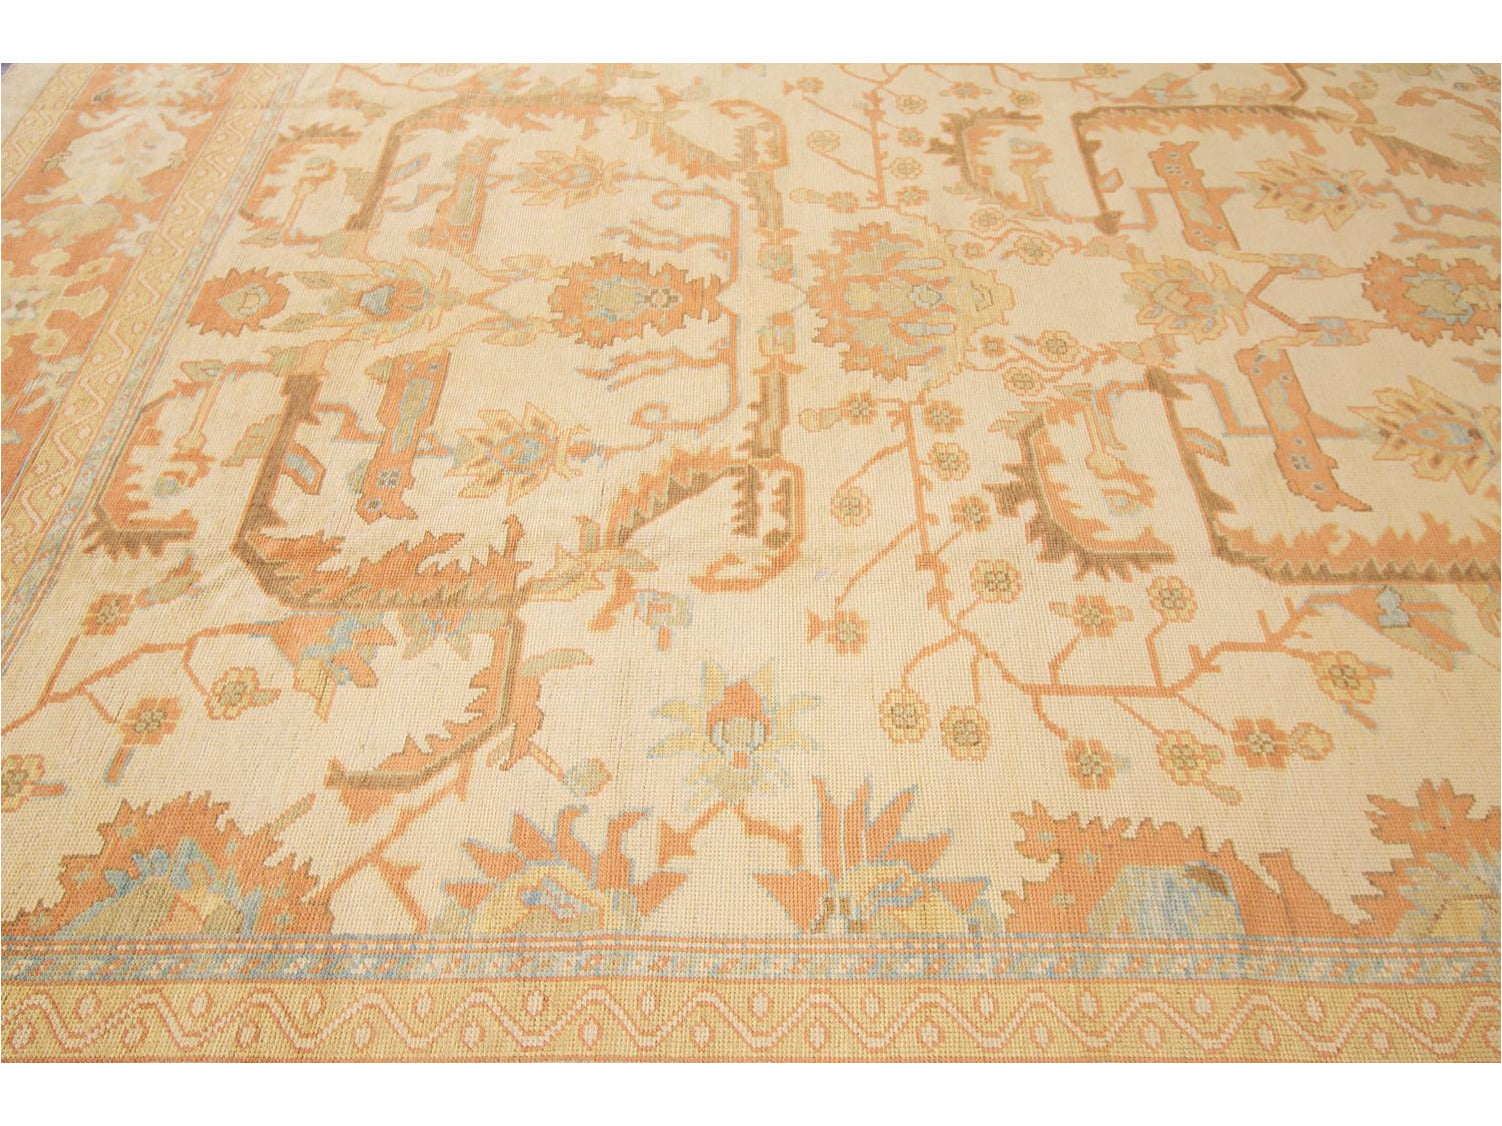 21st Century Contemporary Turkish Oushak Rug 12 X 19